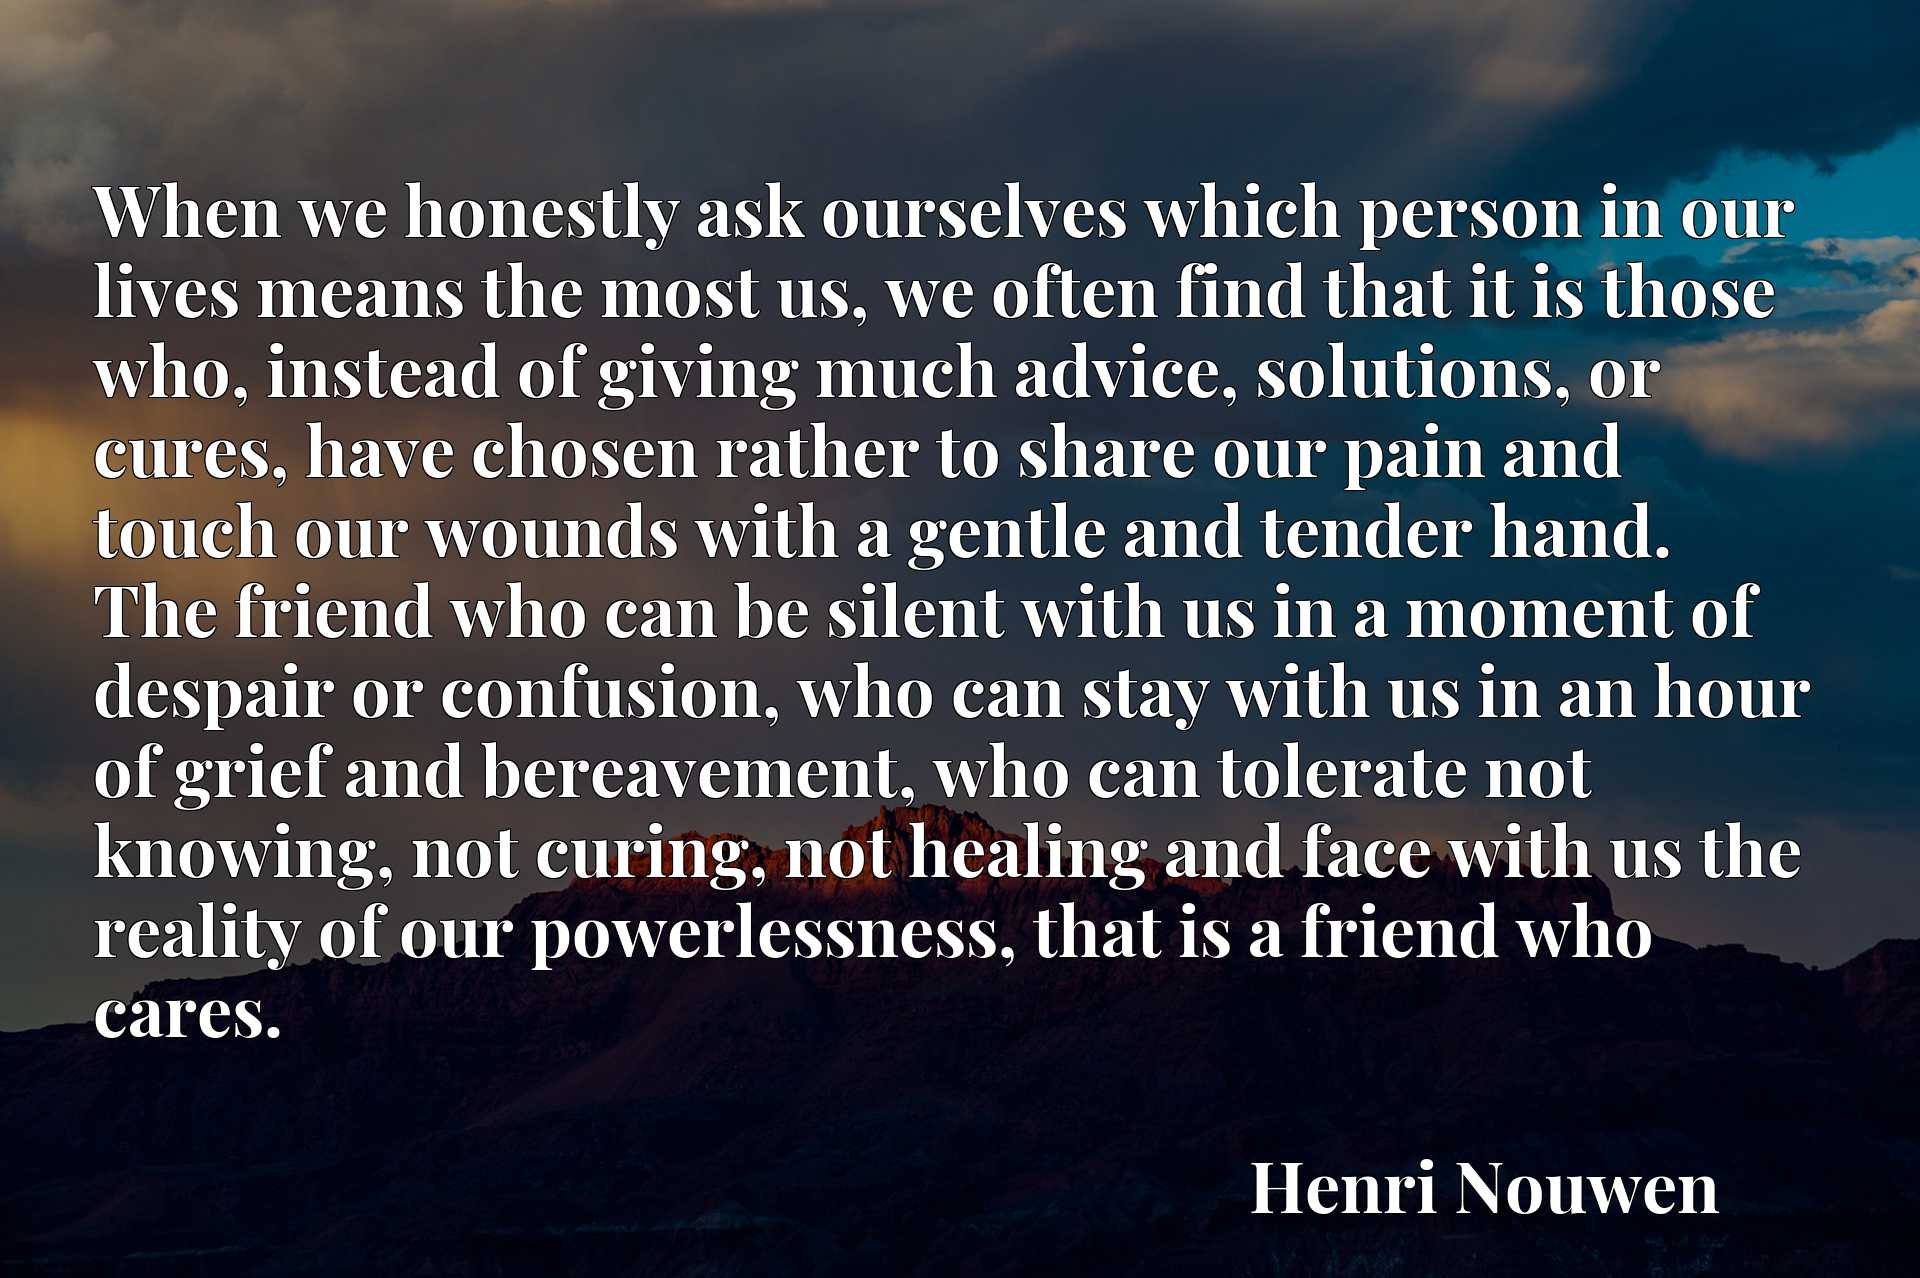 When we honestly ask ourselves which person in our lives means the most us, we often find that it is those who, instead of giving much advice, solutions, or cures, have chosen rather to share our pain and touch our wounds with a gentle and tender hand. The friend who can be silent with us in a moment of despair or confusion, who can stay with us in an hour of grief and bereavement, who can tolerate not knowing, not curing, not healing and face with us the reality of our powerlessness, that is a friend who cares.